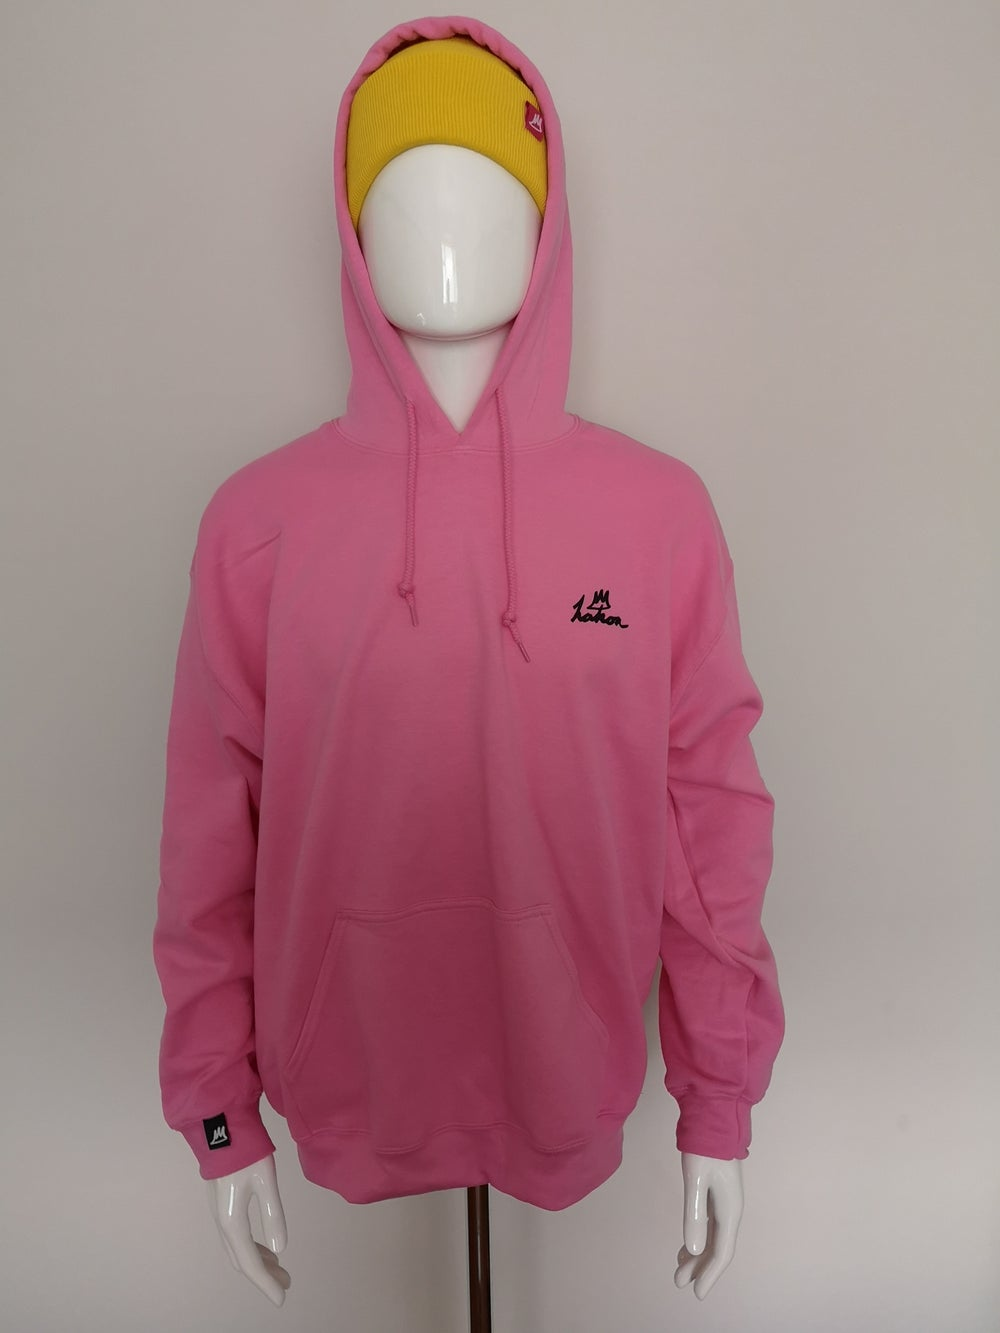 Image of Classic Logo Hood (Black on Pink)